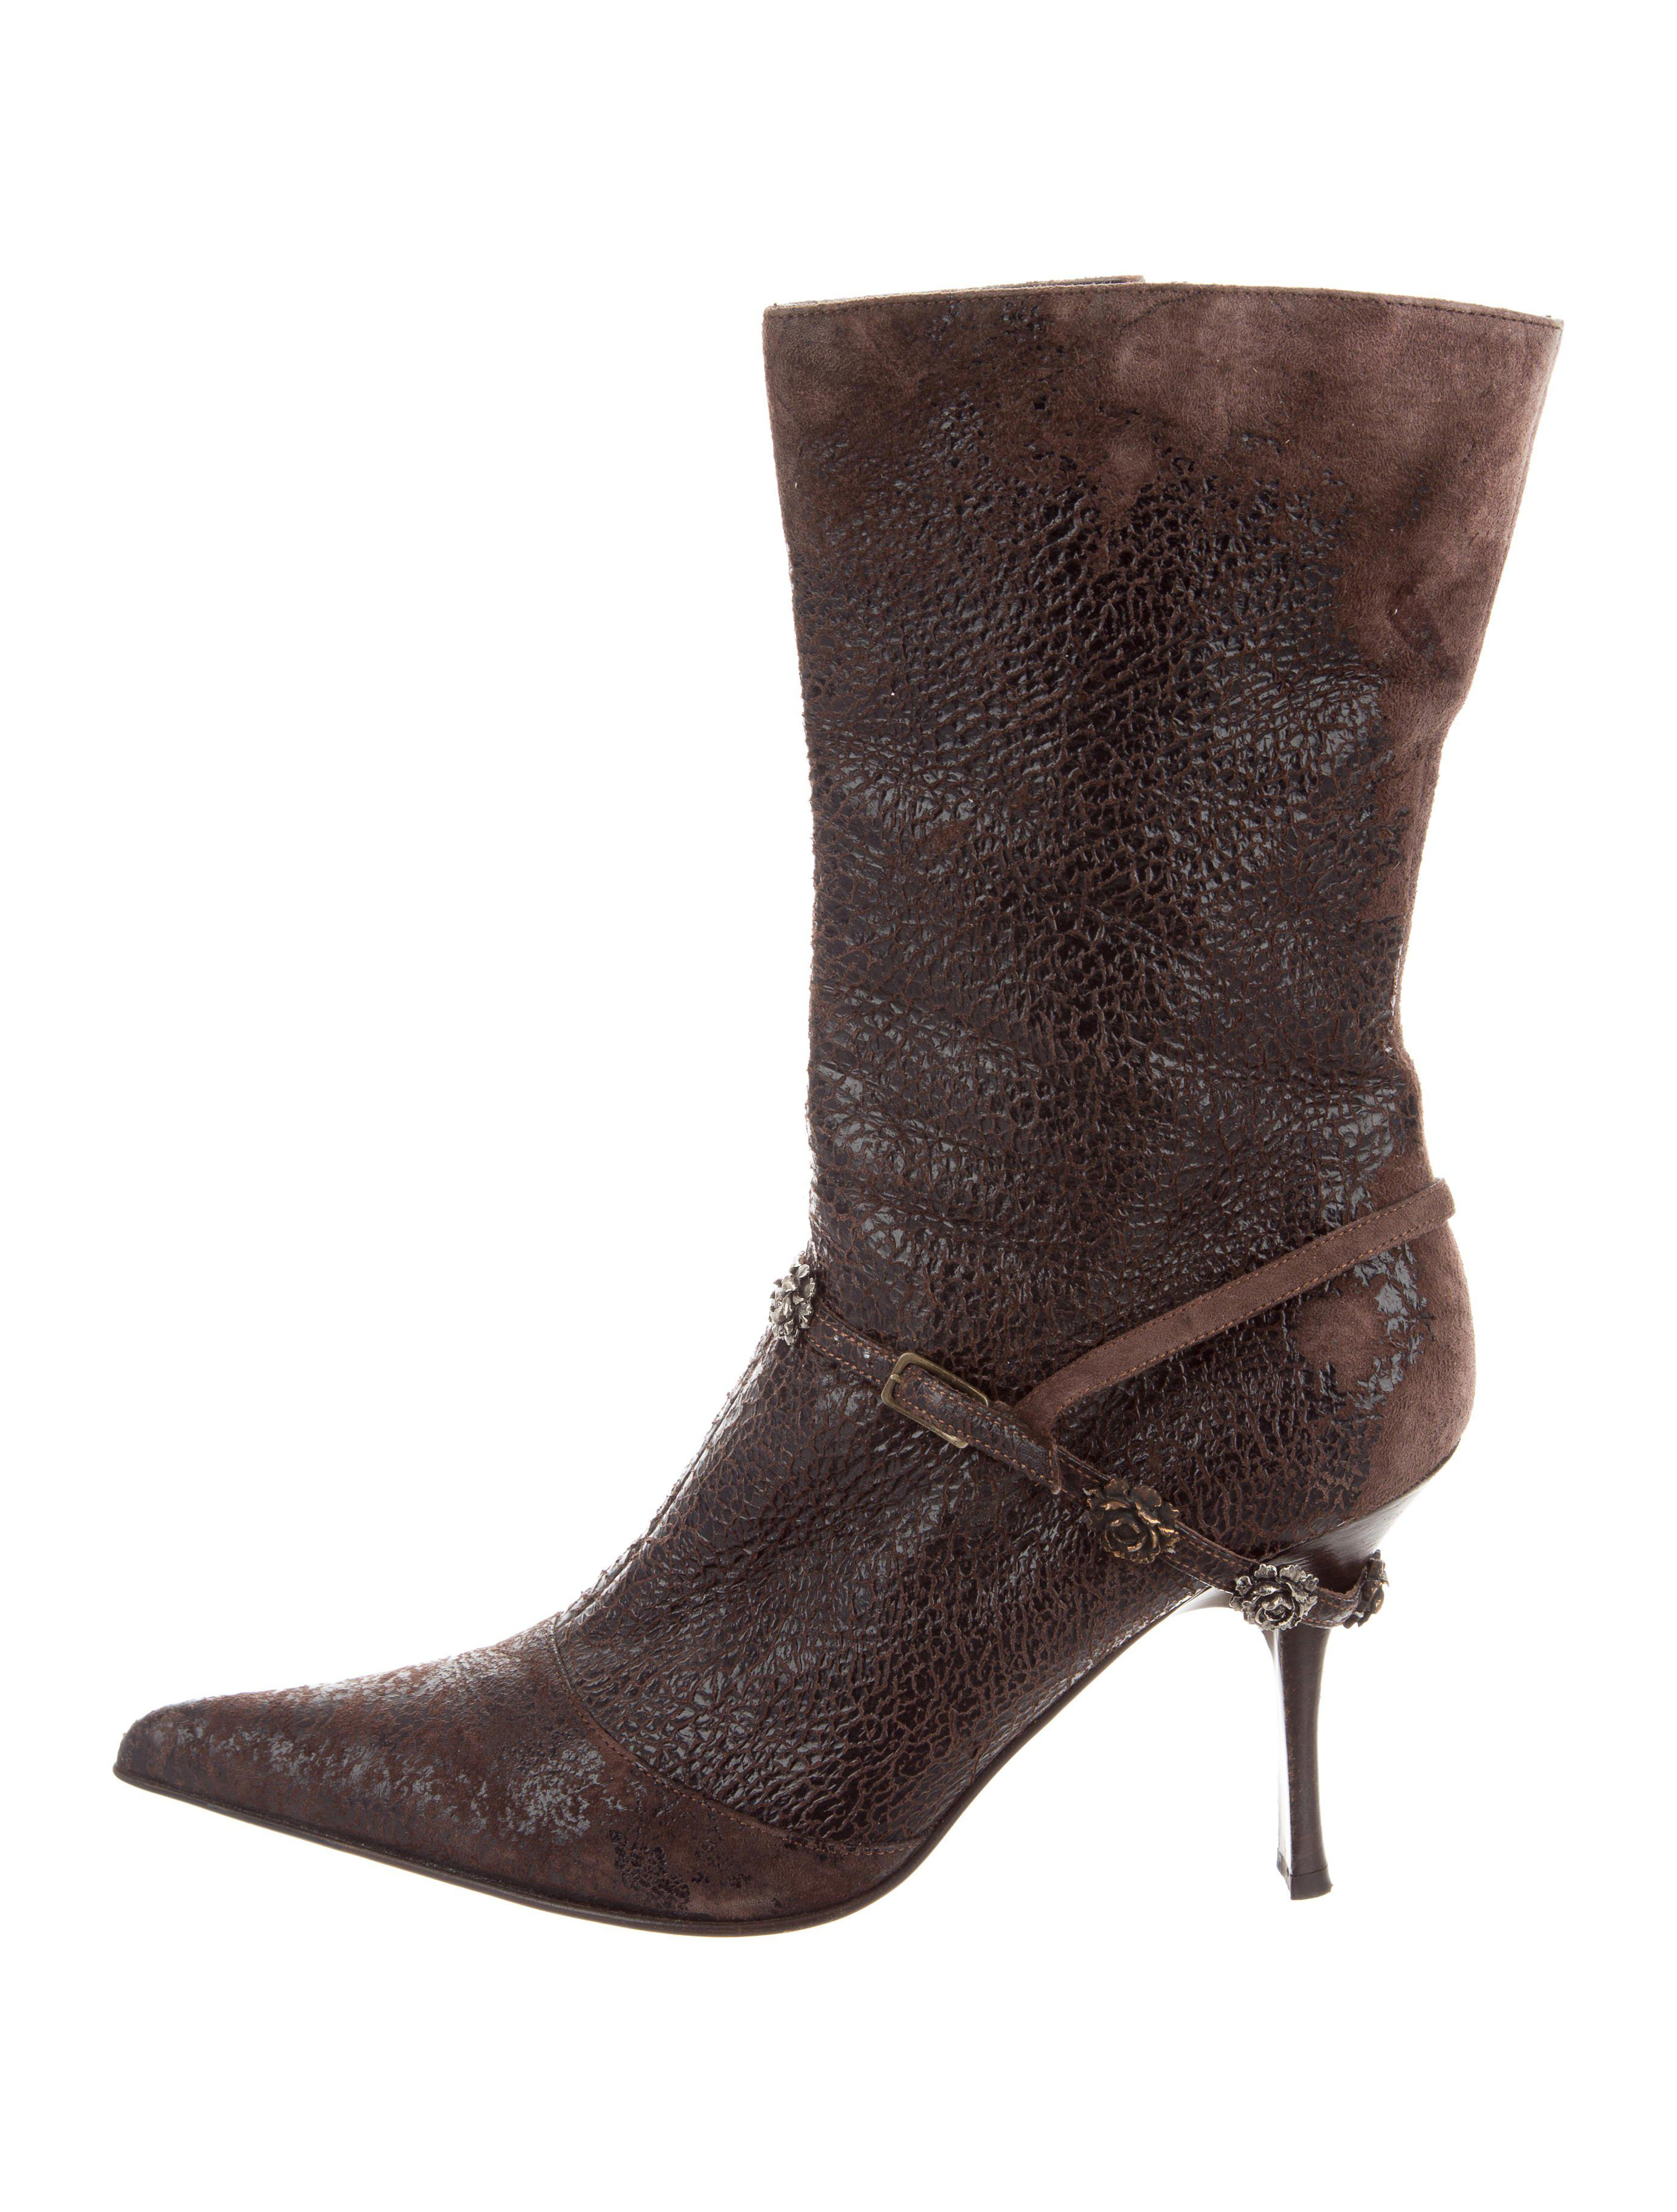 Roberto Cavalli Suede Floral-Embellished Ankle Boots for cheap price clearance best sale cheap classic Inexpensive discount tumblr Fn5P1hRj